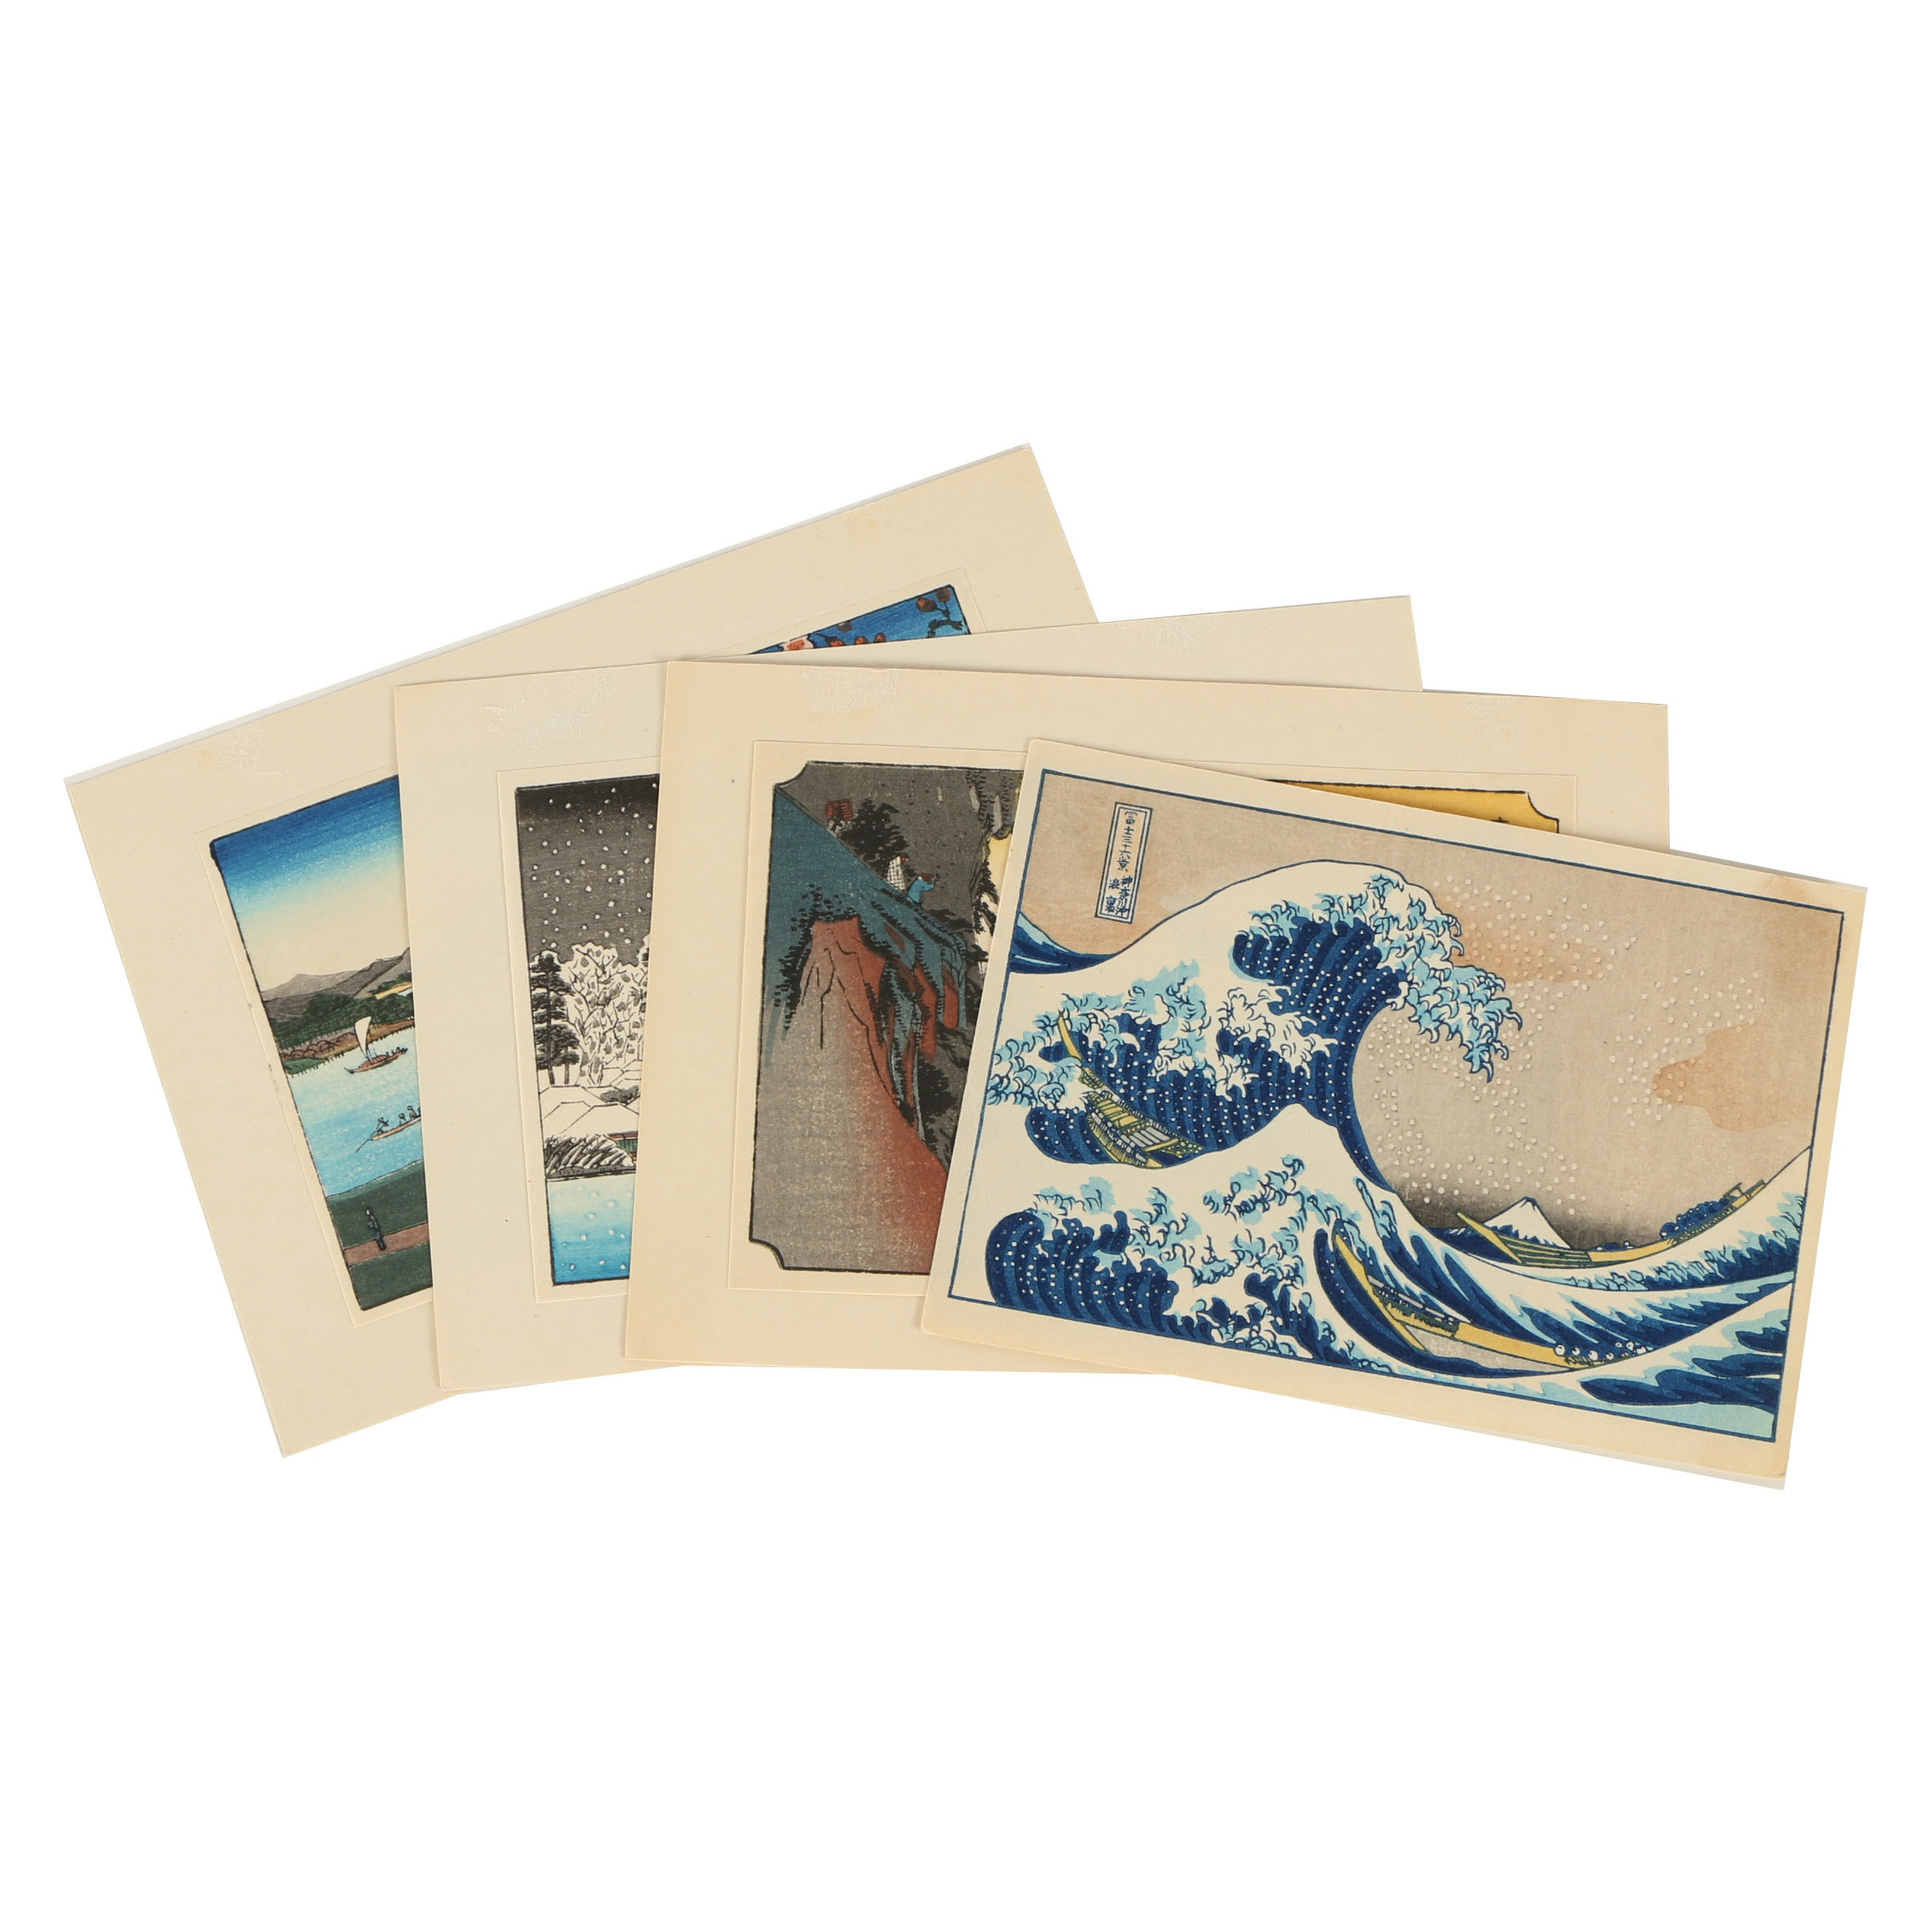 20th Century Reproduction Woodblock Prints